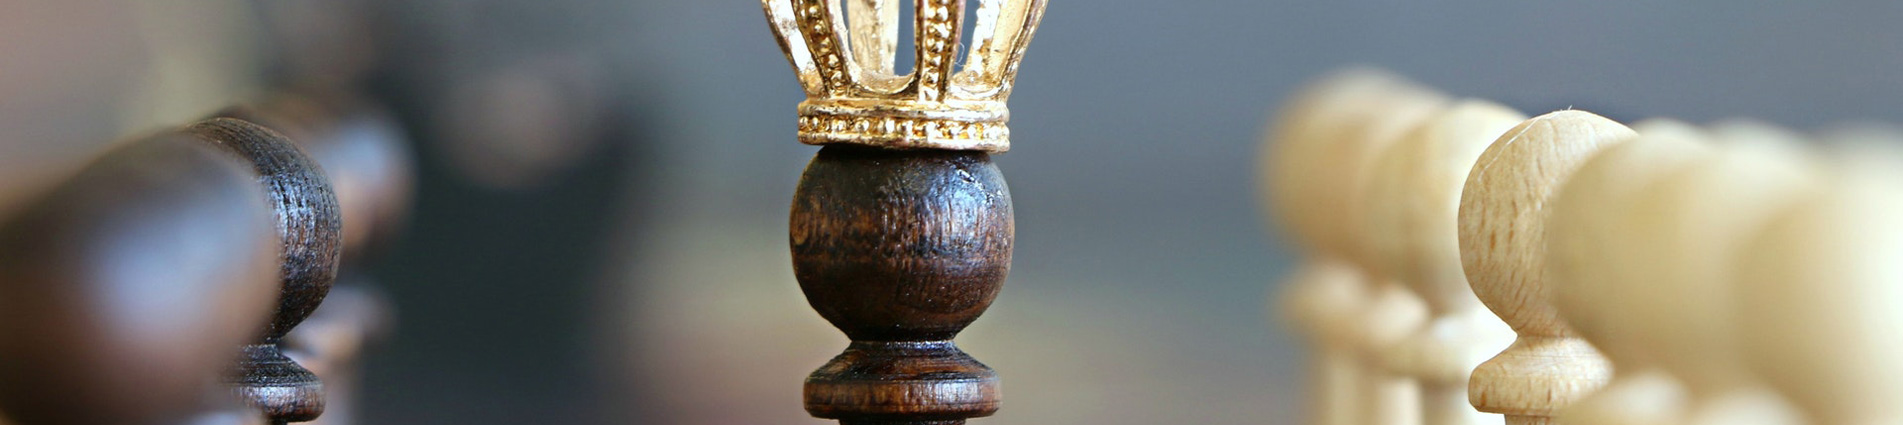 Chess crown